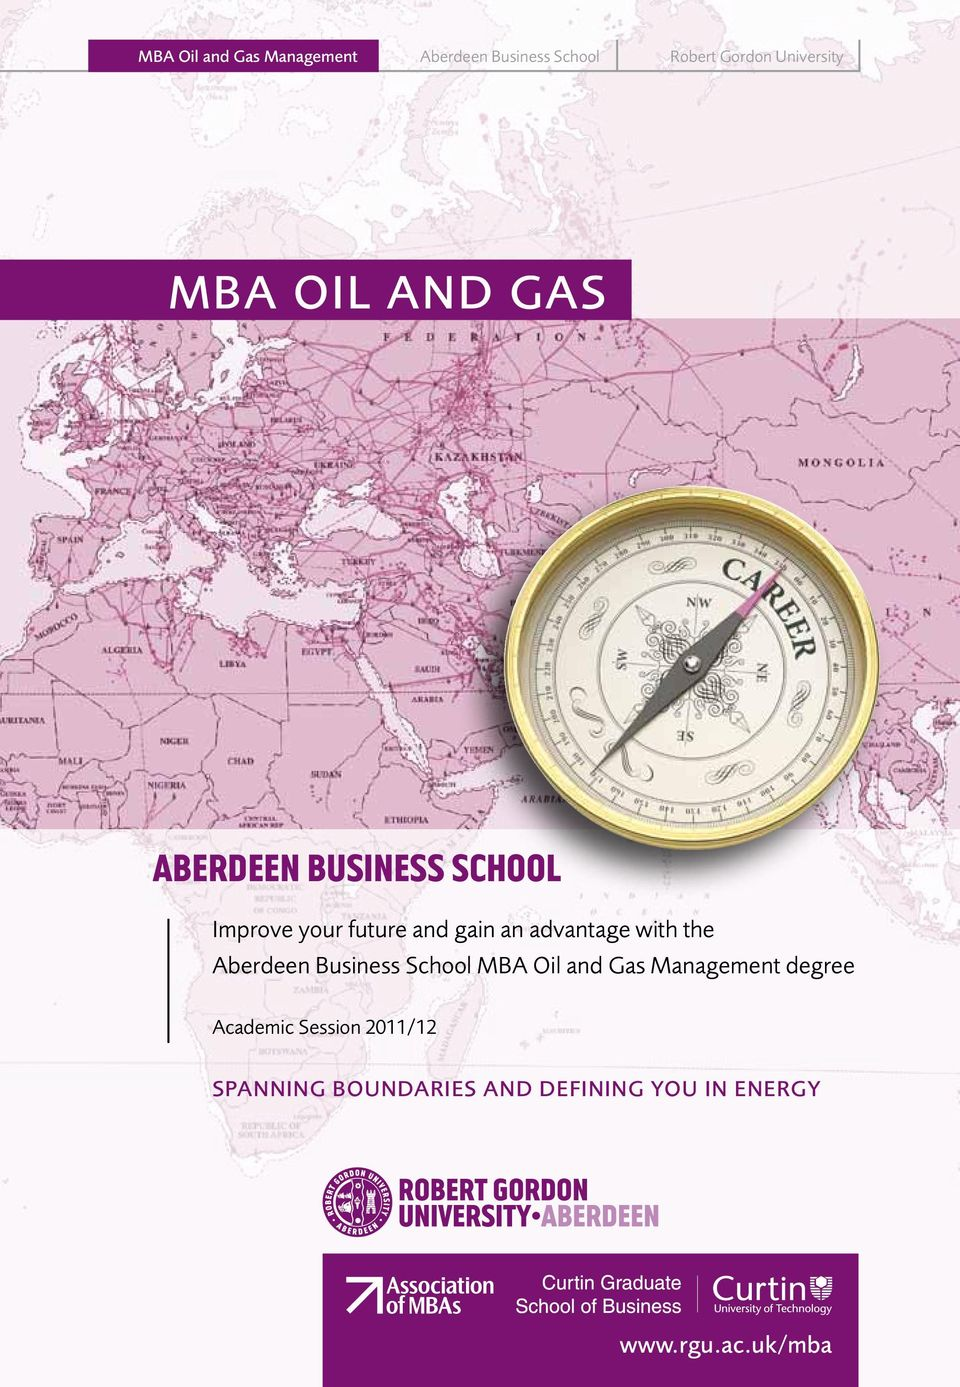 advantage with the Aberdeen Business School MBA Oil and Gas Management degree